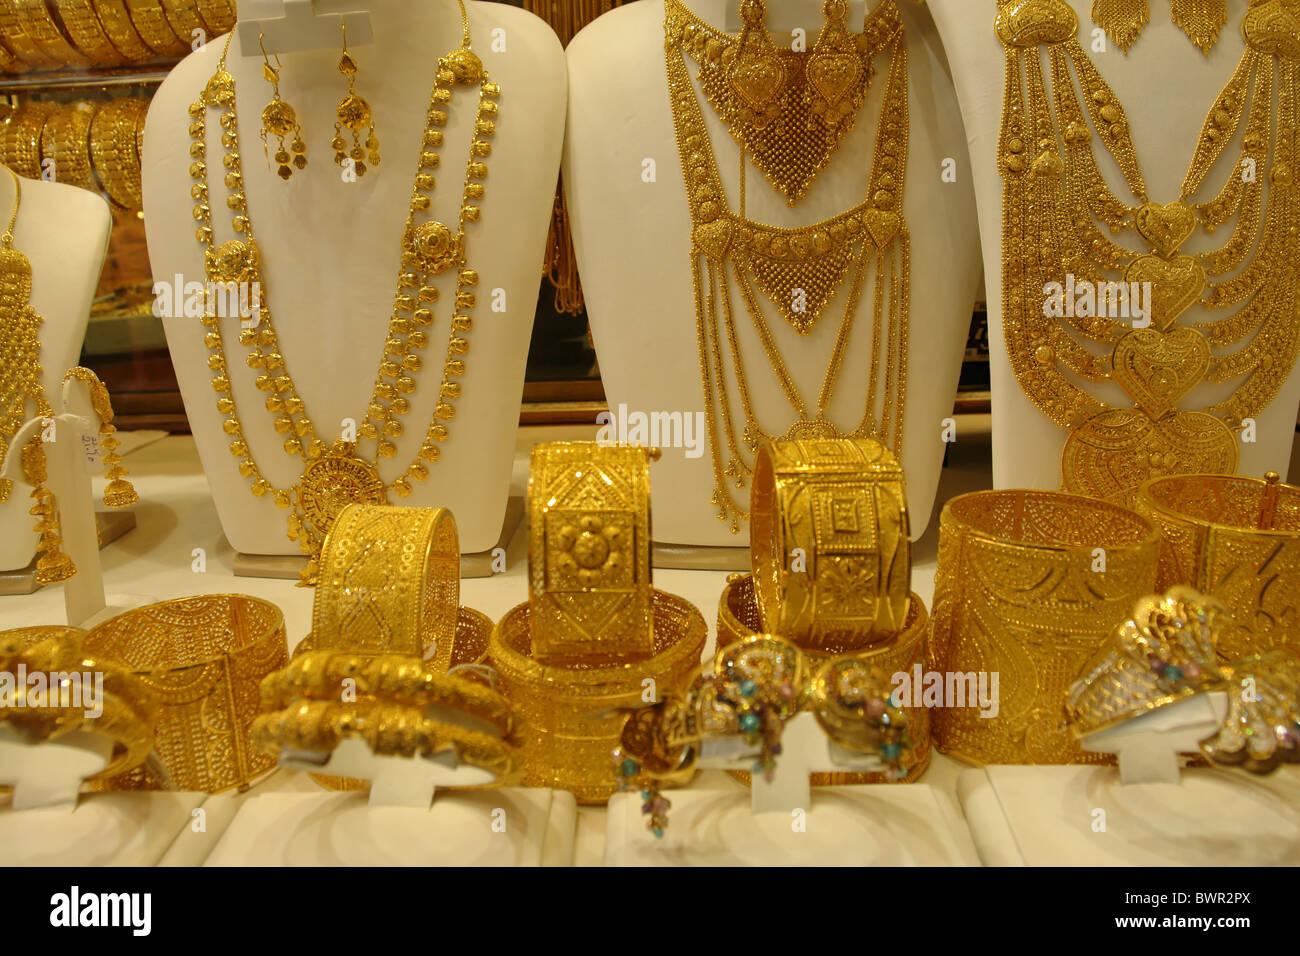 image bracelet royalty traditional stock of free images gold arab